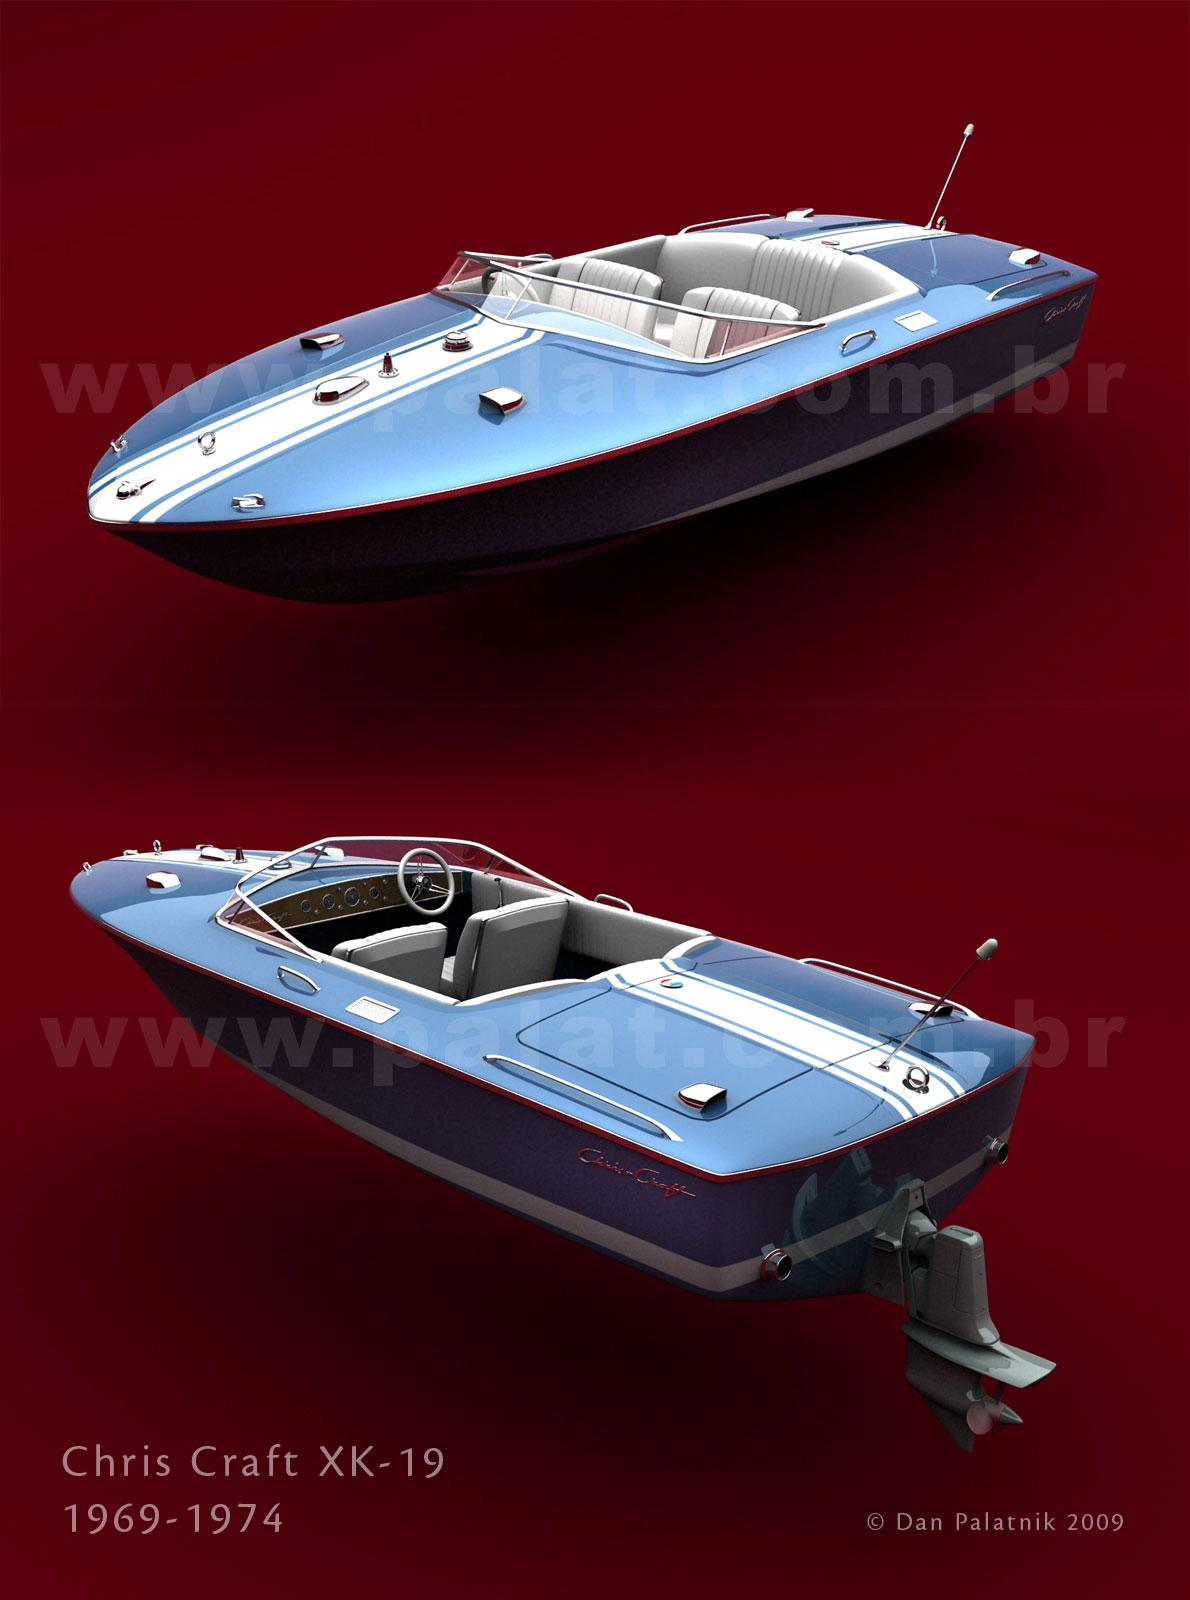 Chris Craft XK-19